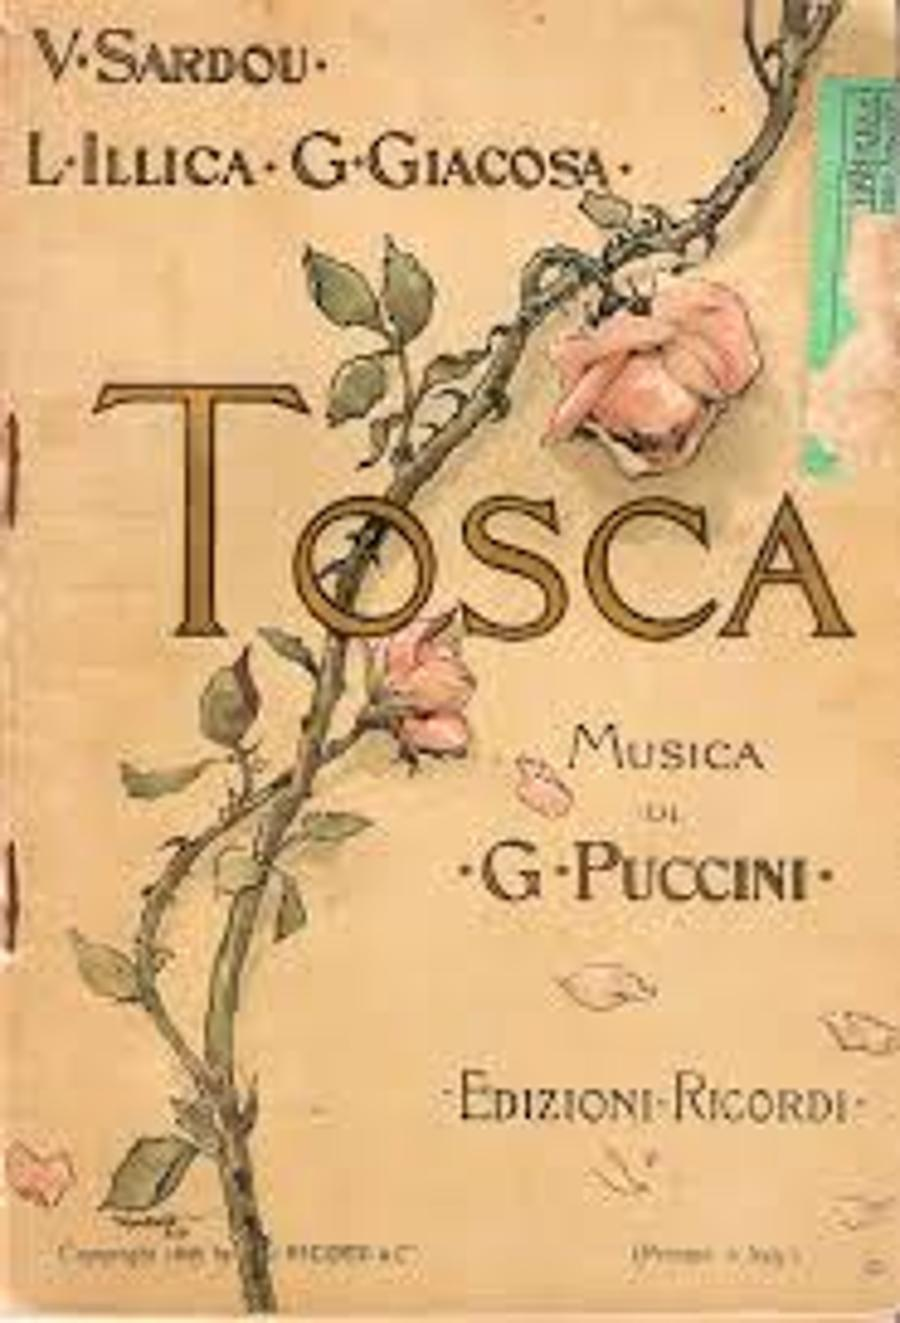 Puccini: Tosca, Hungarian State Opera, Budapest, 21 March